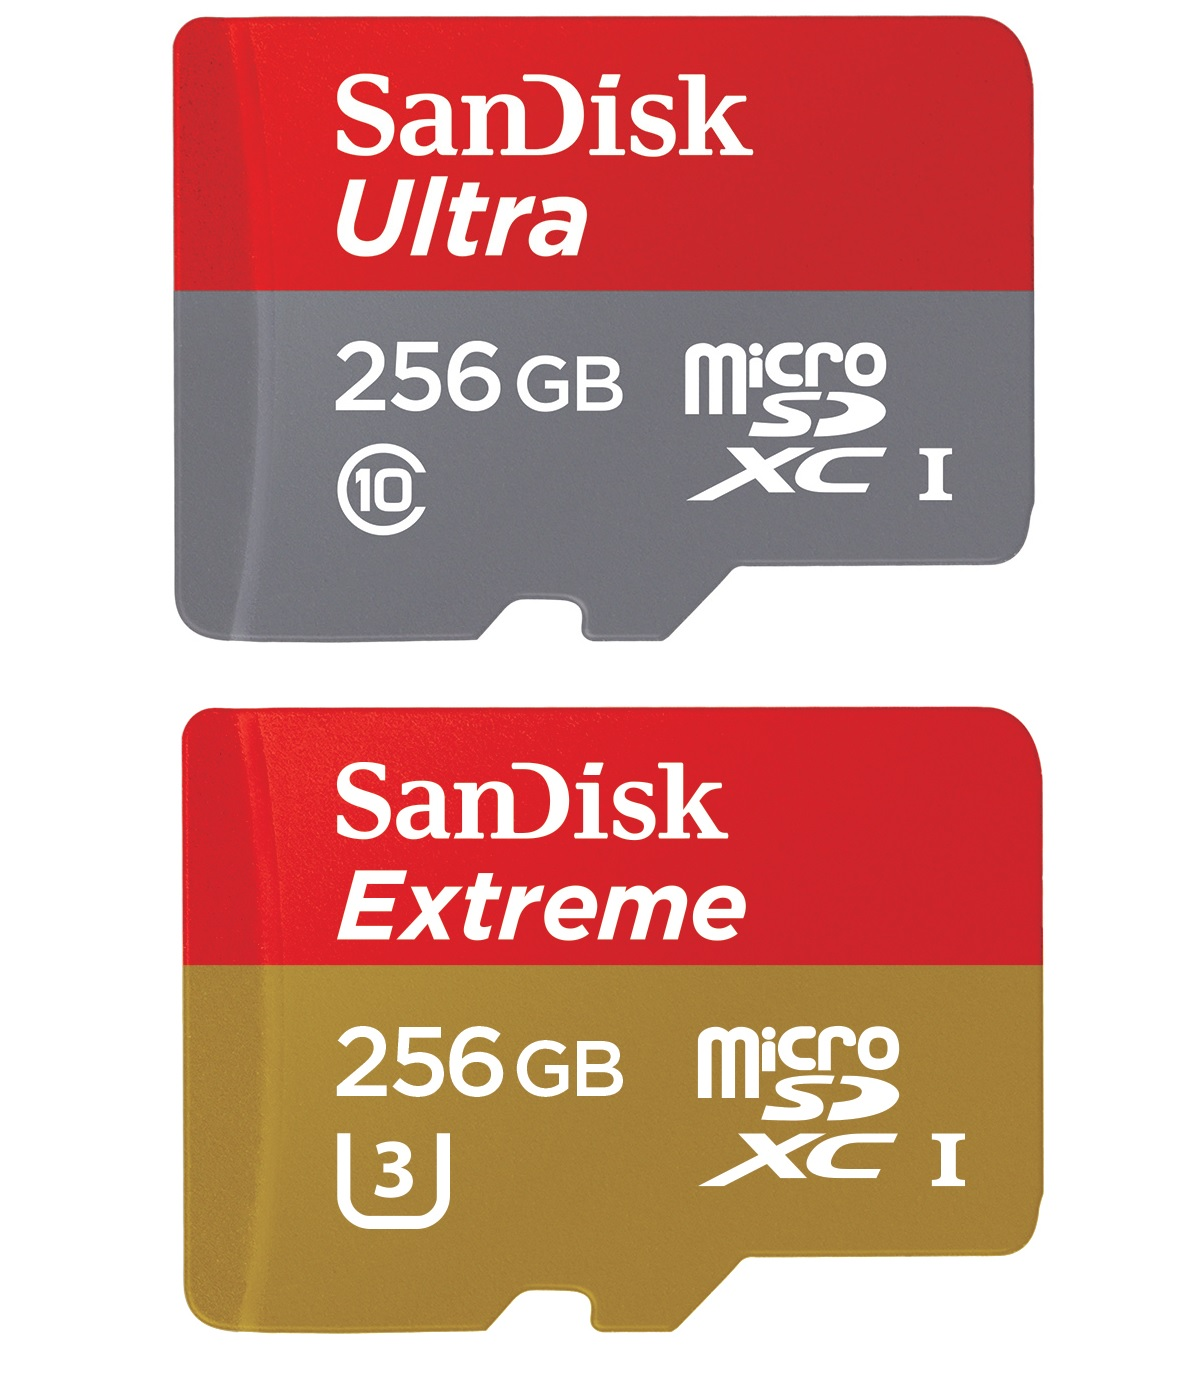 The high-capacity, high-speed miniSD cards from Western Digital.